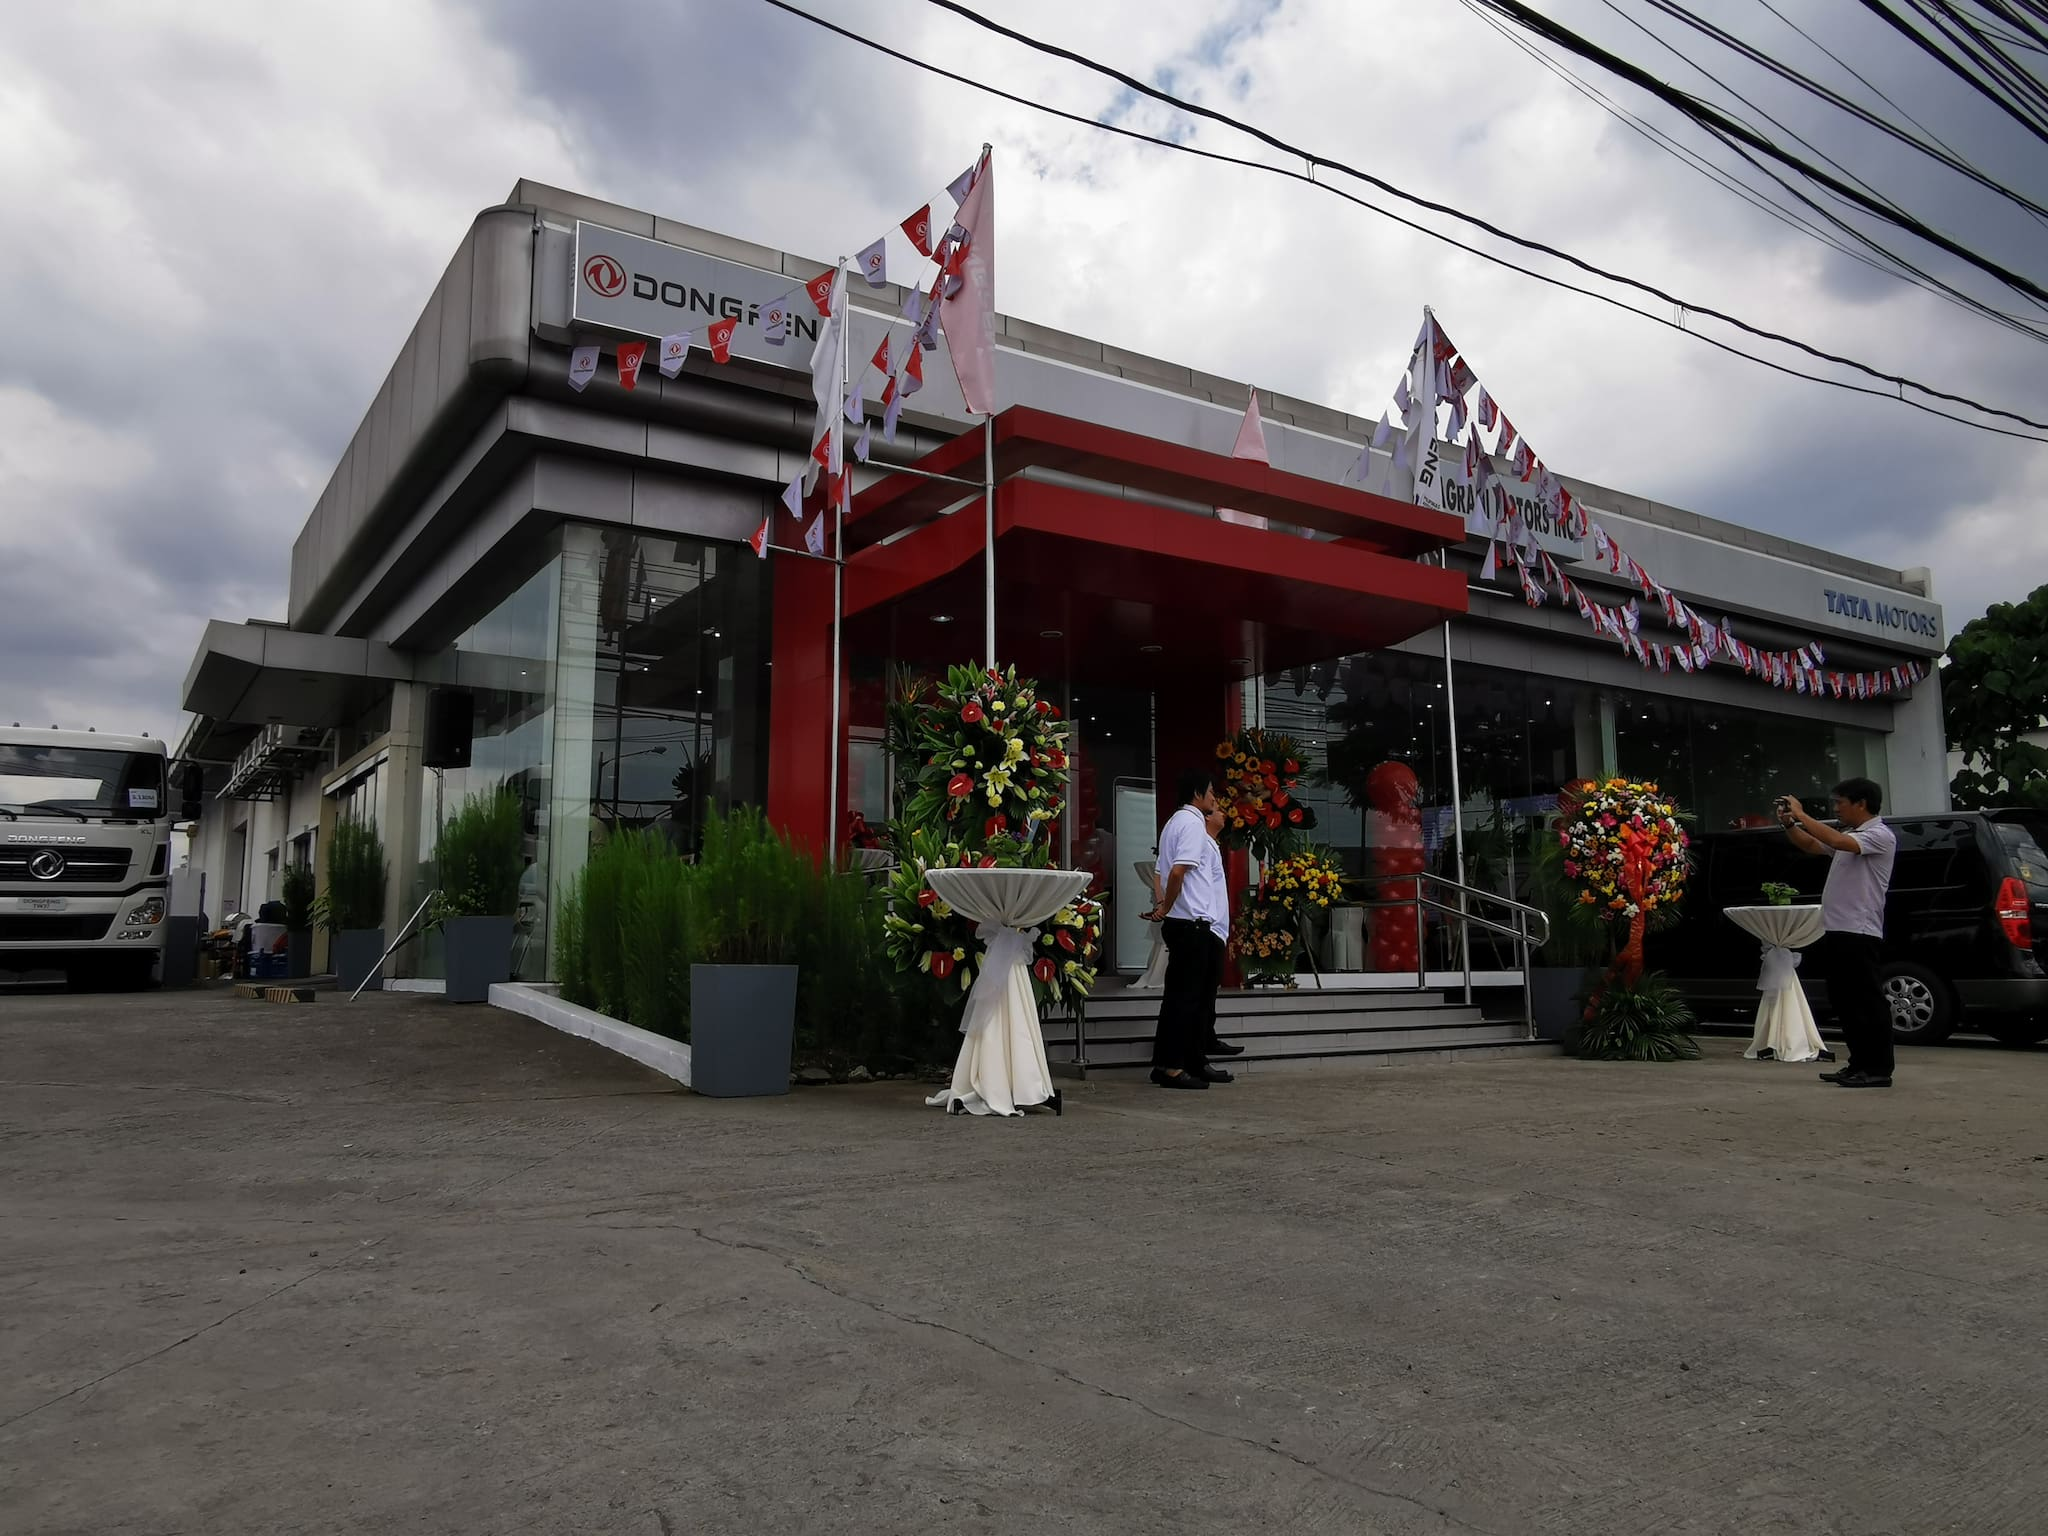 Dongfeng Opens First Dealership Under Pilipinas Autogroup